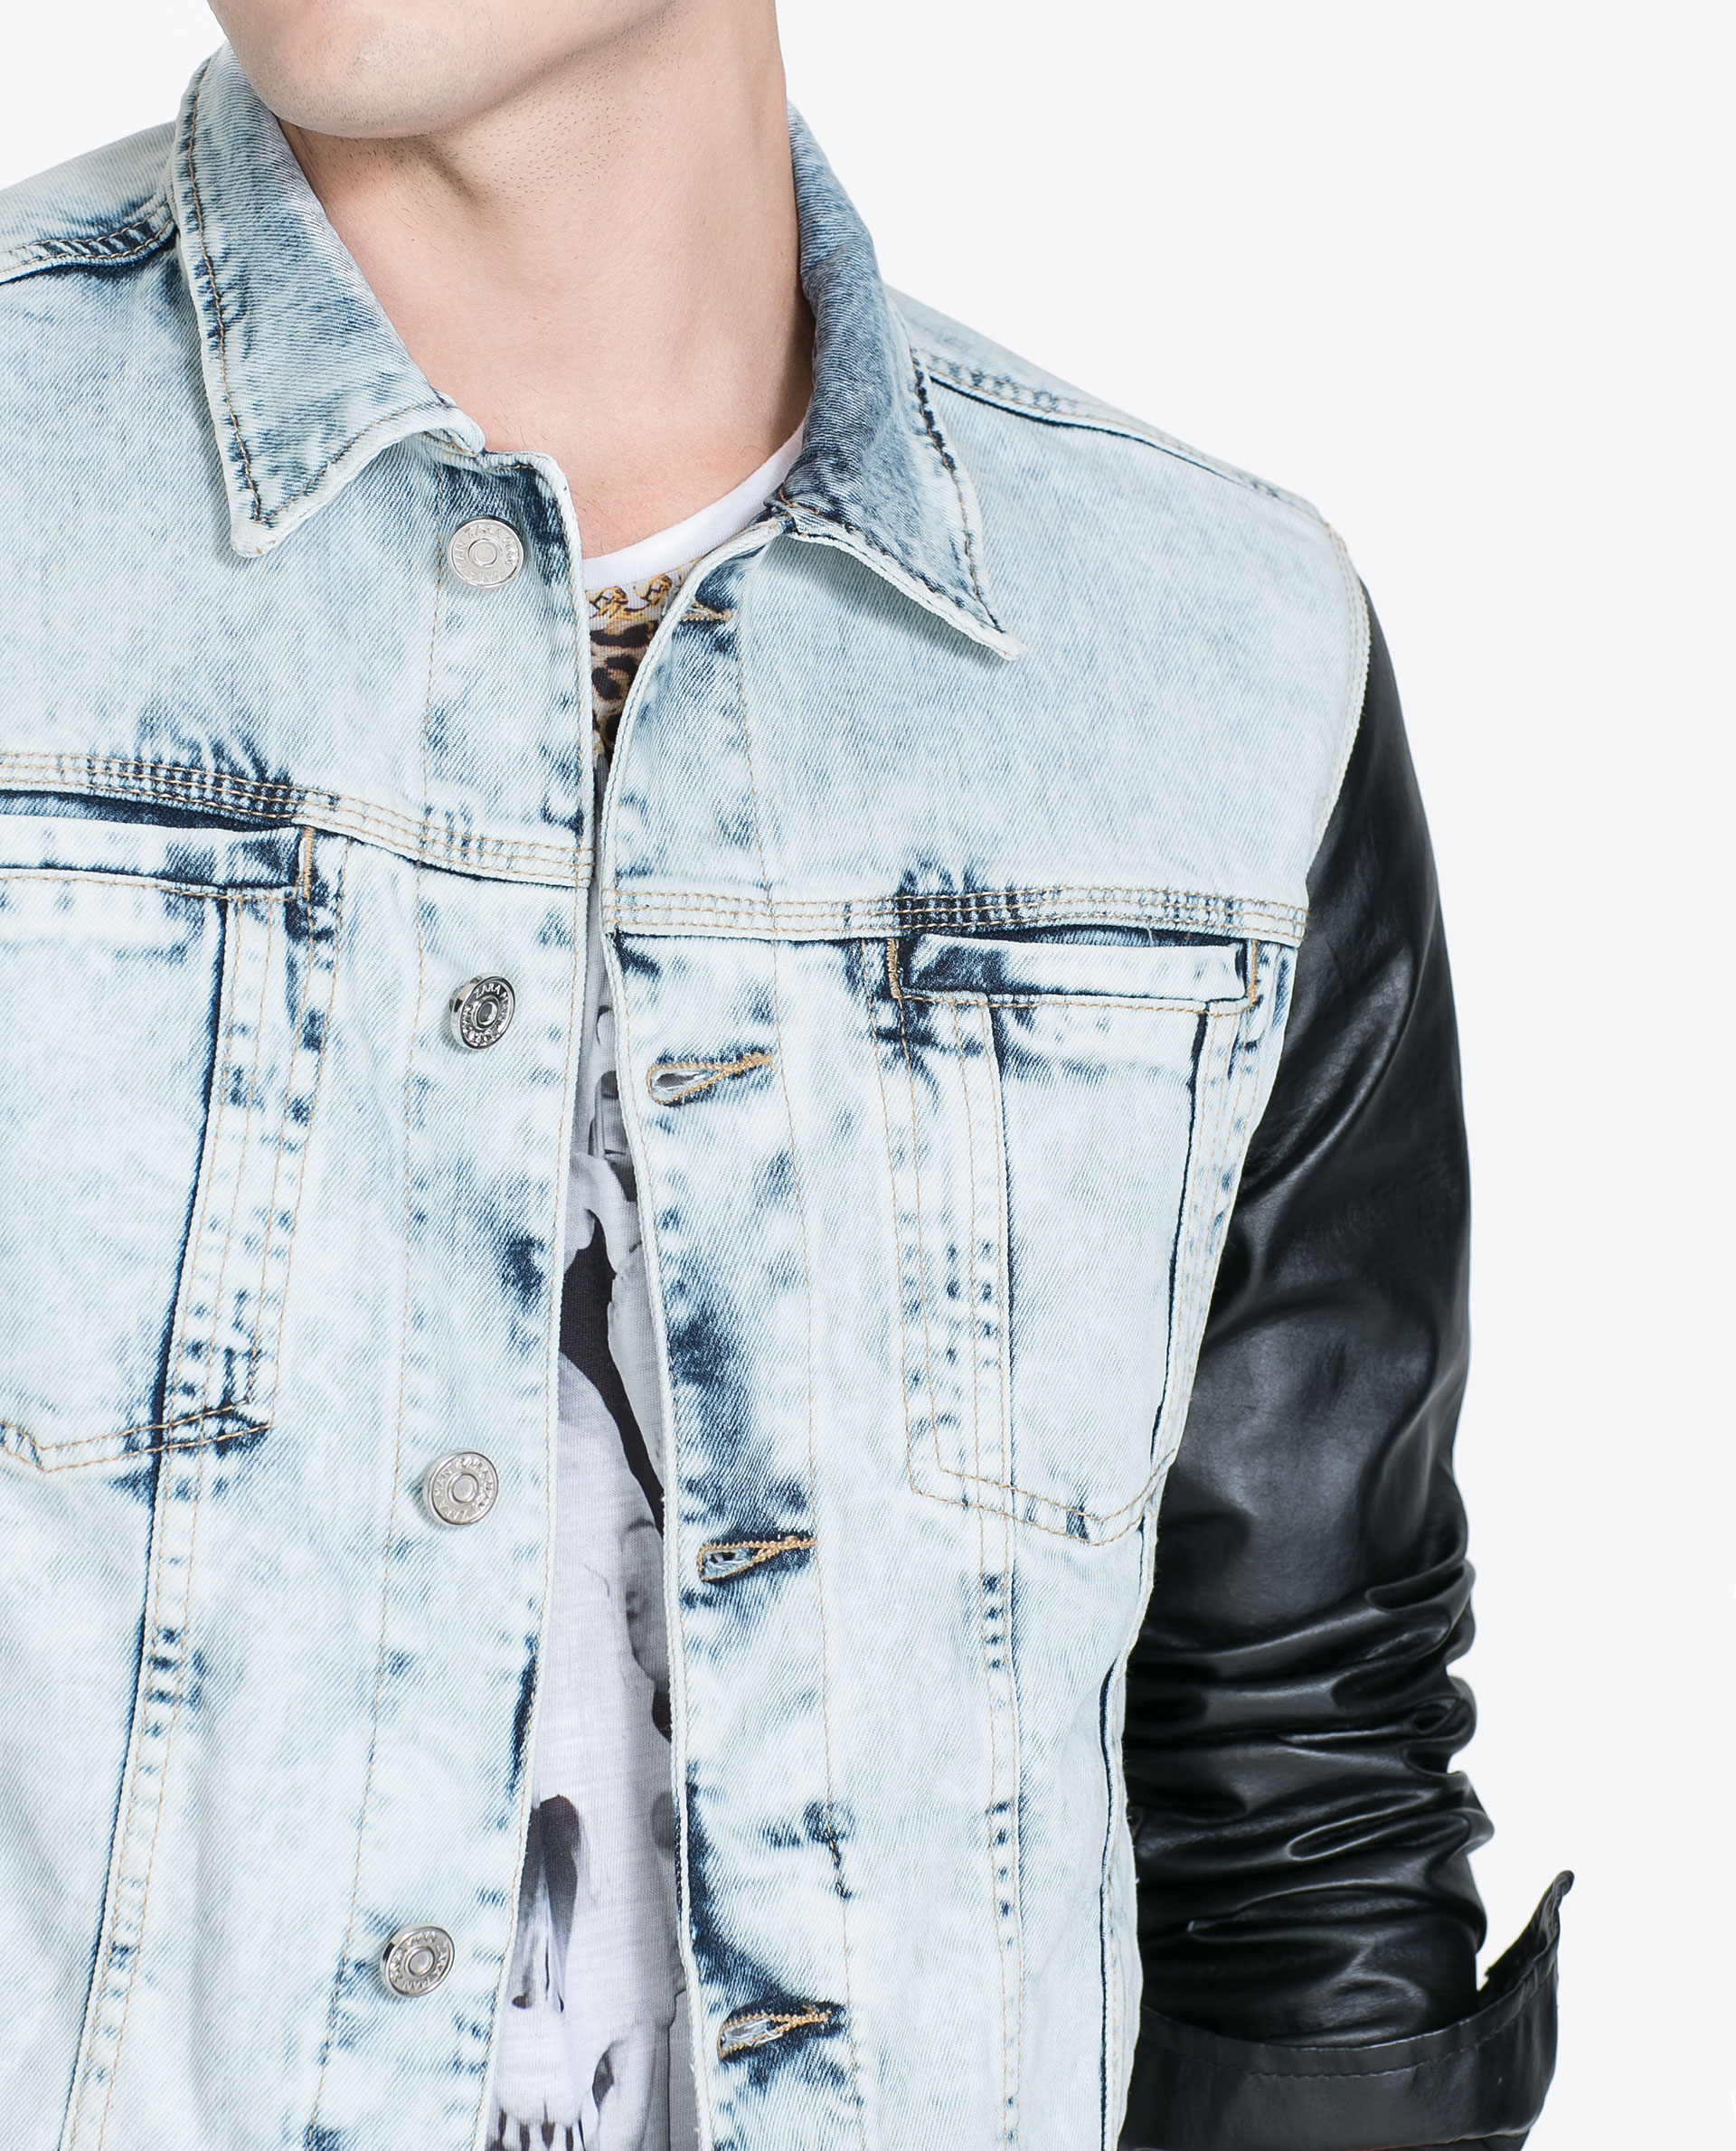 Denim jackets with leather sleeves